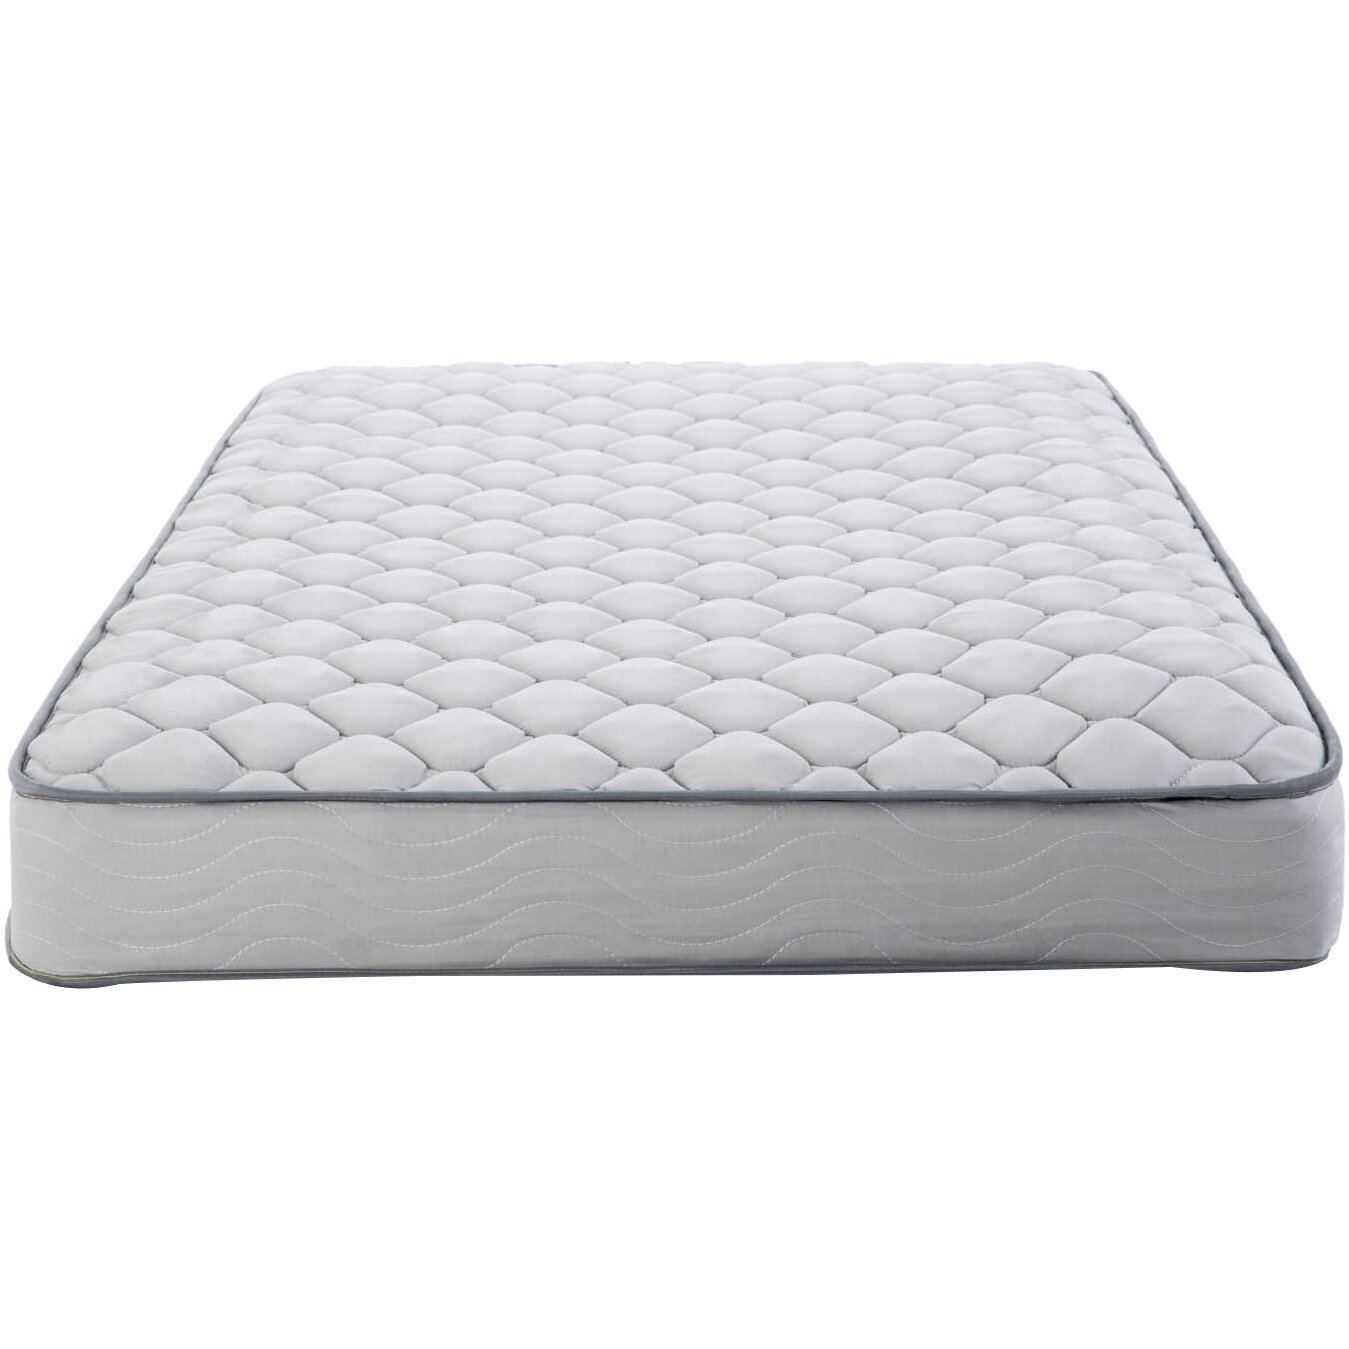 Linenspa 6quot Inner Spring Mattress amp Reviews Wayfair : 6 Inner Spring Mattress LS06 from www.wayfair.com size 1349 x 1349 jpeg 139kB